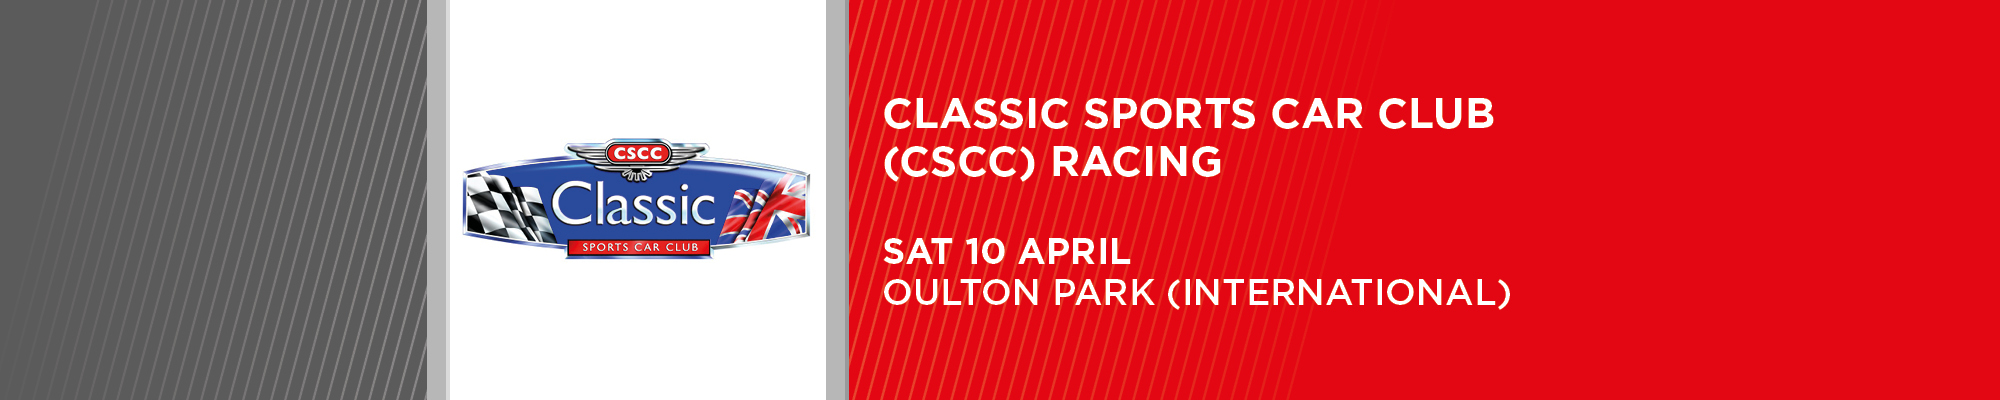 Classic Sports Car Club Racing